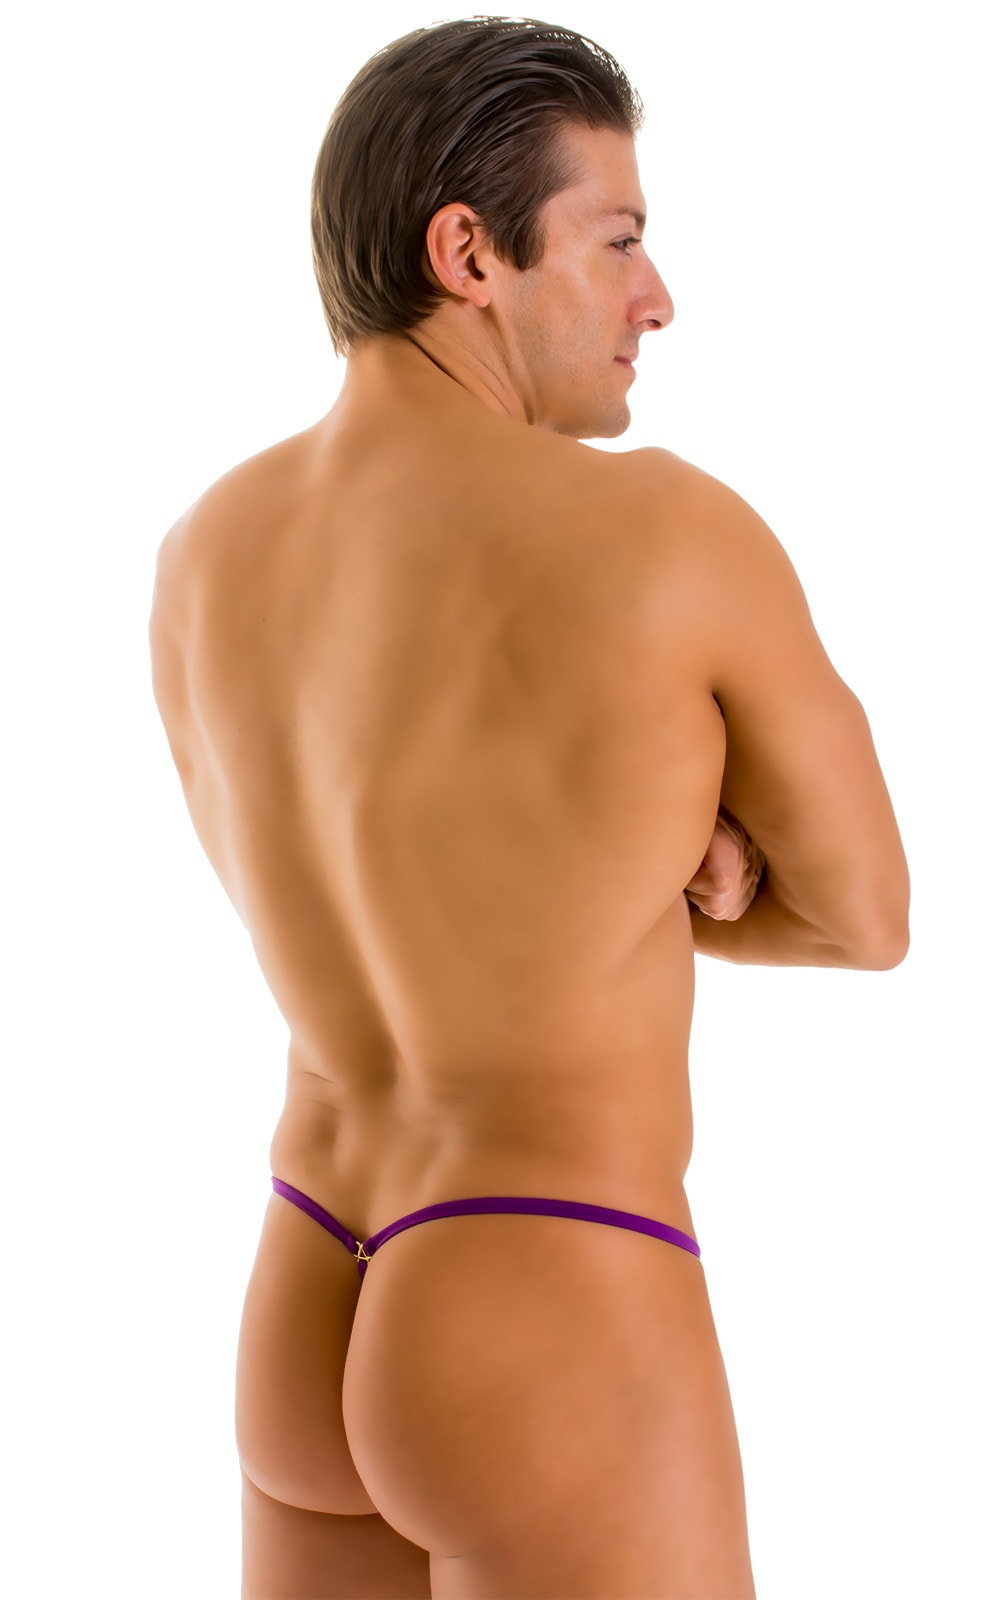 G String Swimsuit - Adjustable Pouch in ThinSKINZ Grape  2